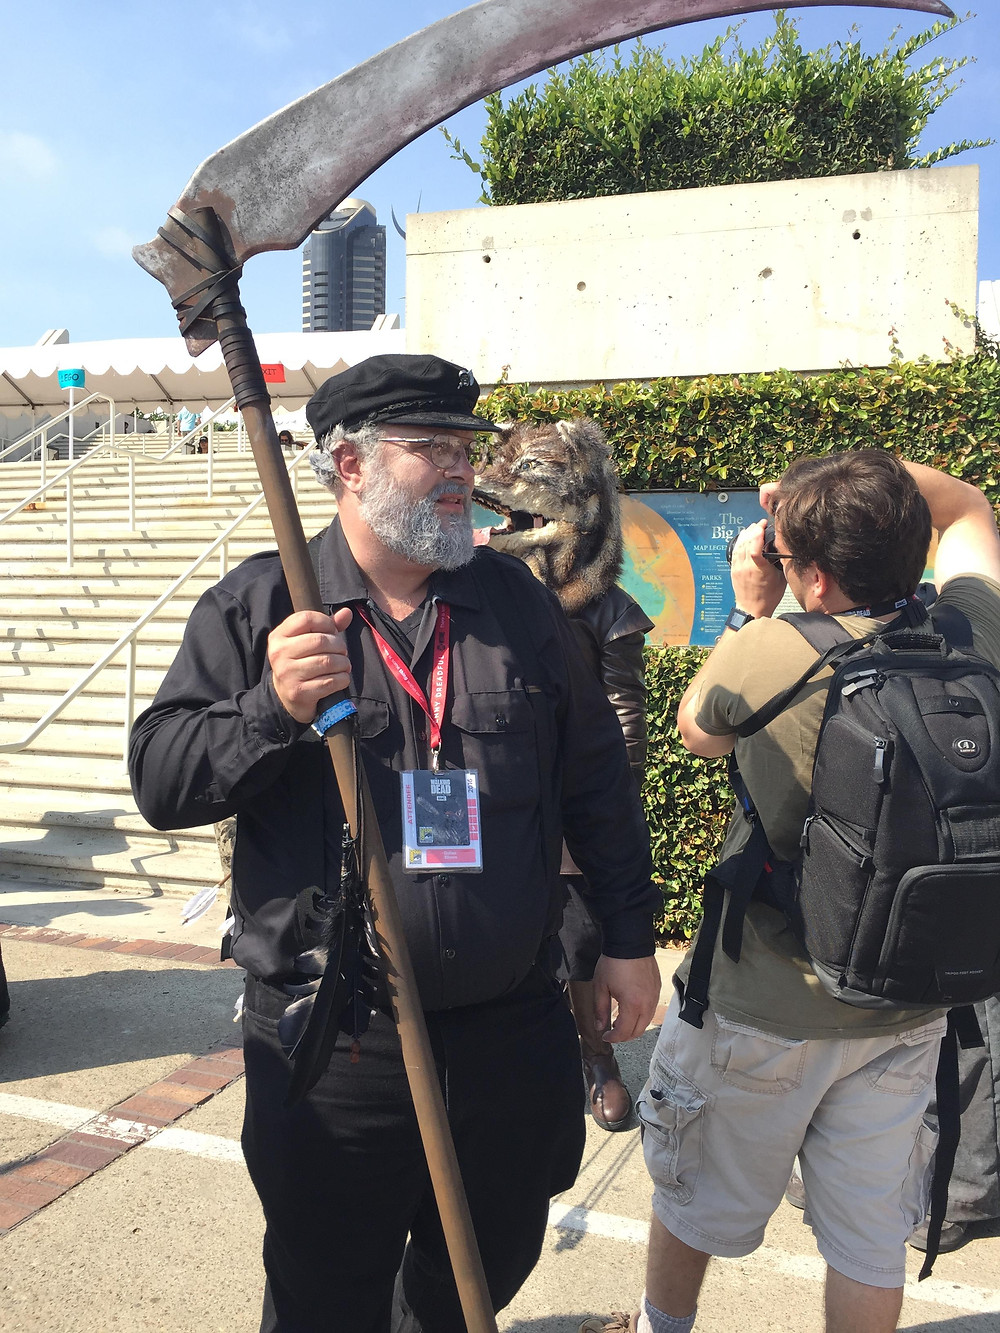 Cosplay Socially Gaming George RR Martin